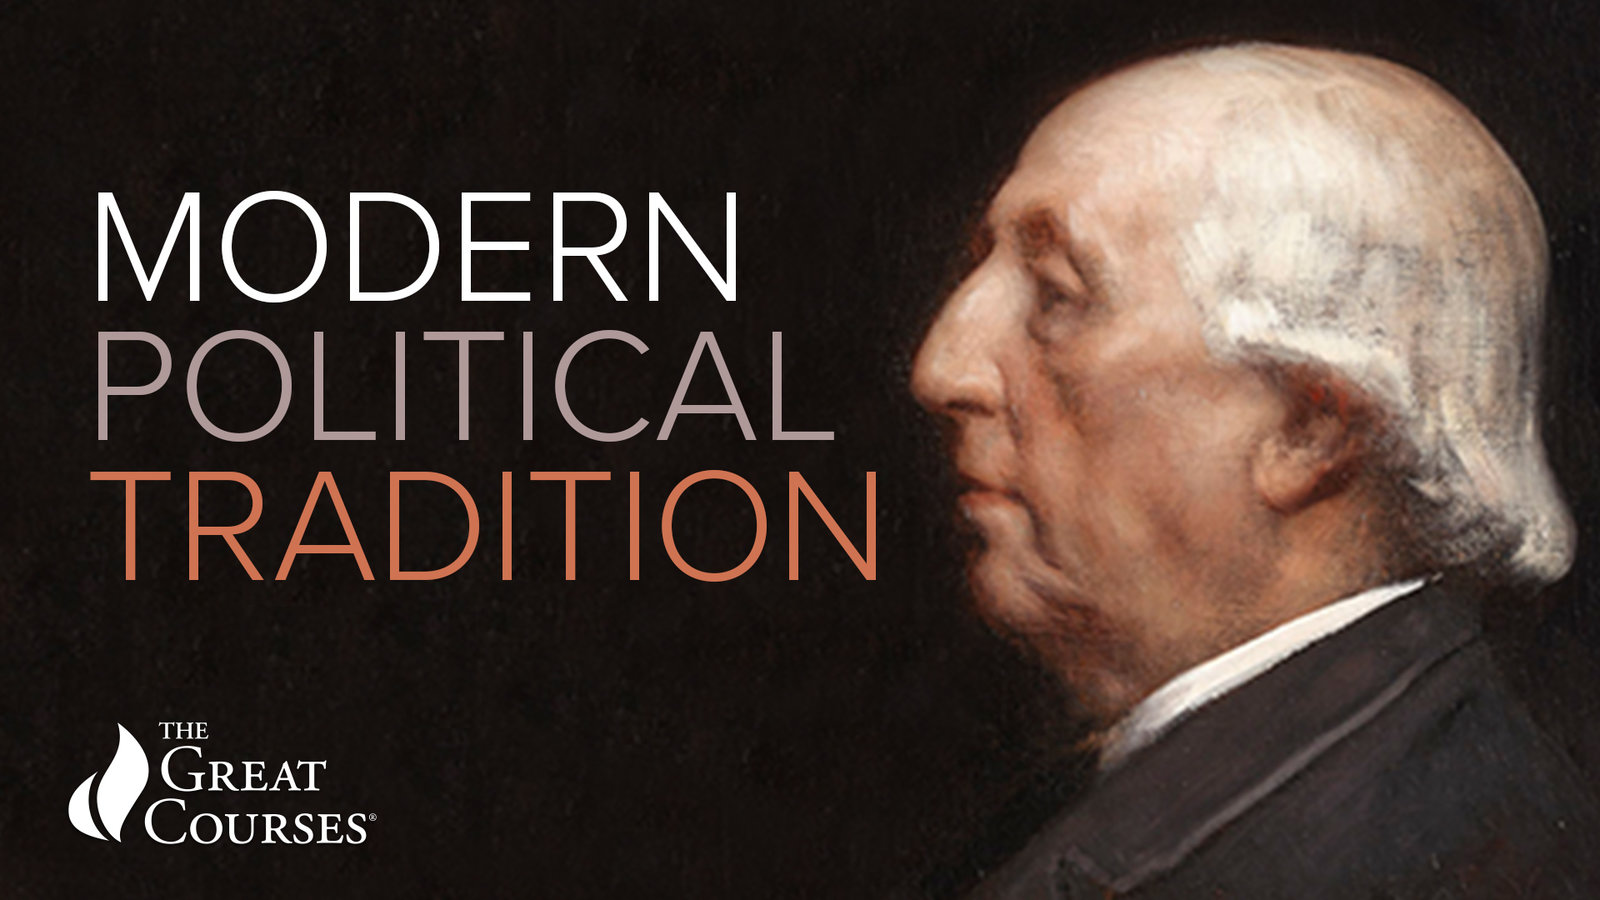 The Modern Political Tradition - Hobbes to Habermas